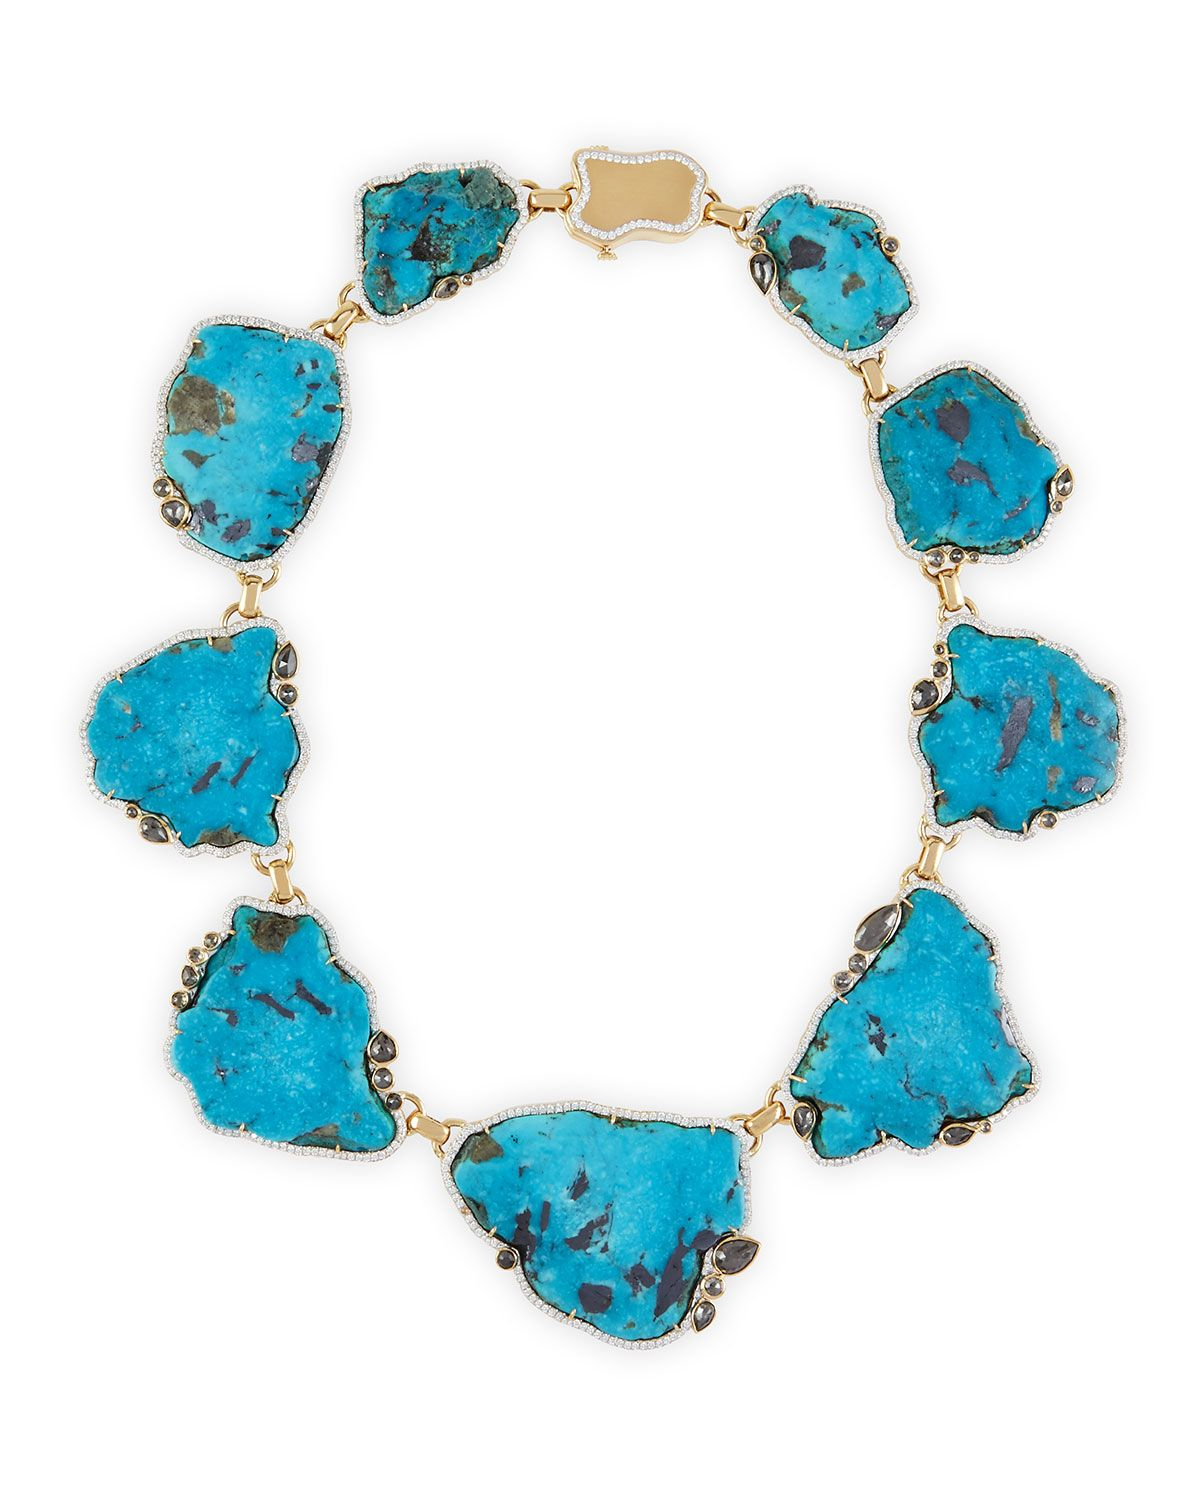 pamela huizenga 18k gold turquoise necklace with diamonds product 1 170937415 normal